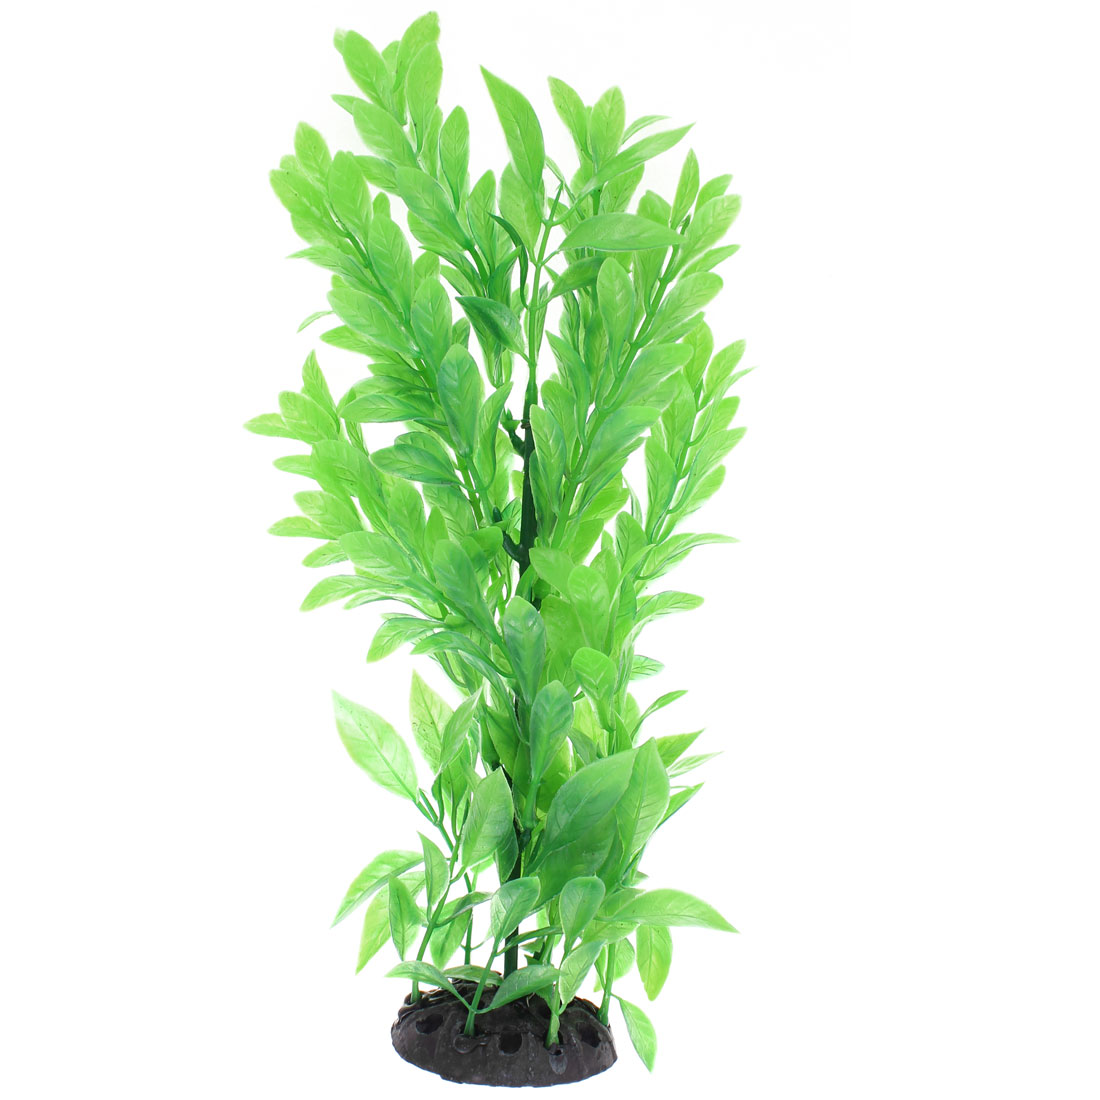 Plastic Landscaping Water Plant Decoration 27cm Height for Aquarium